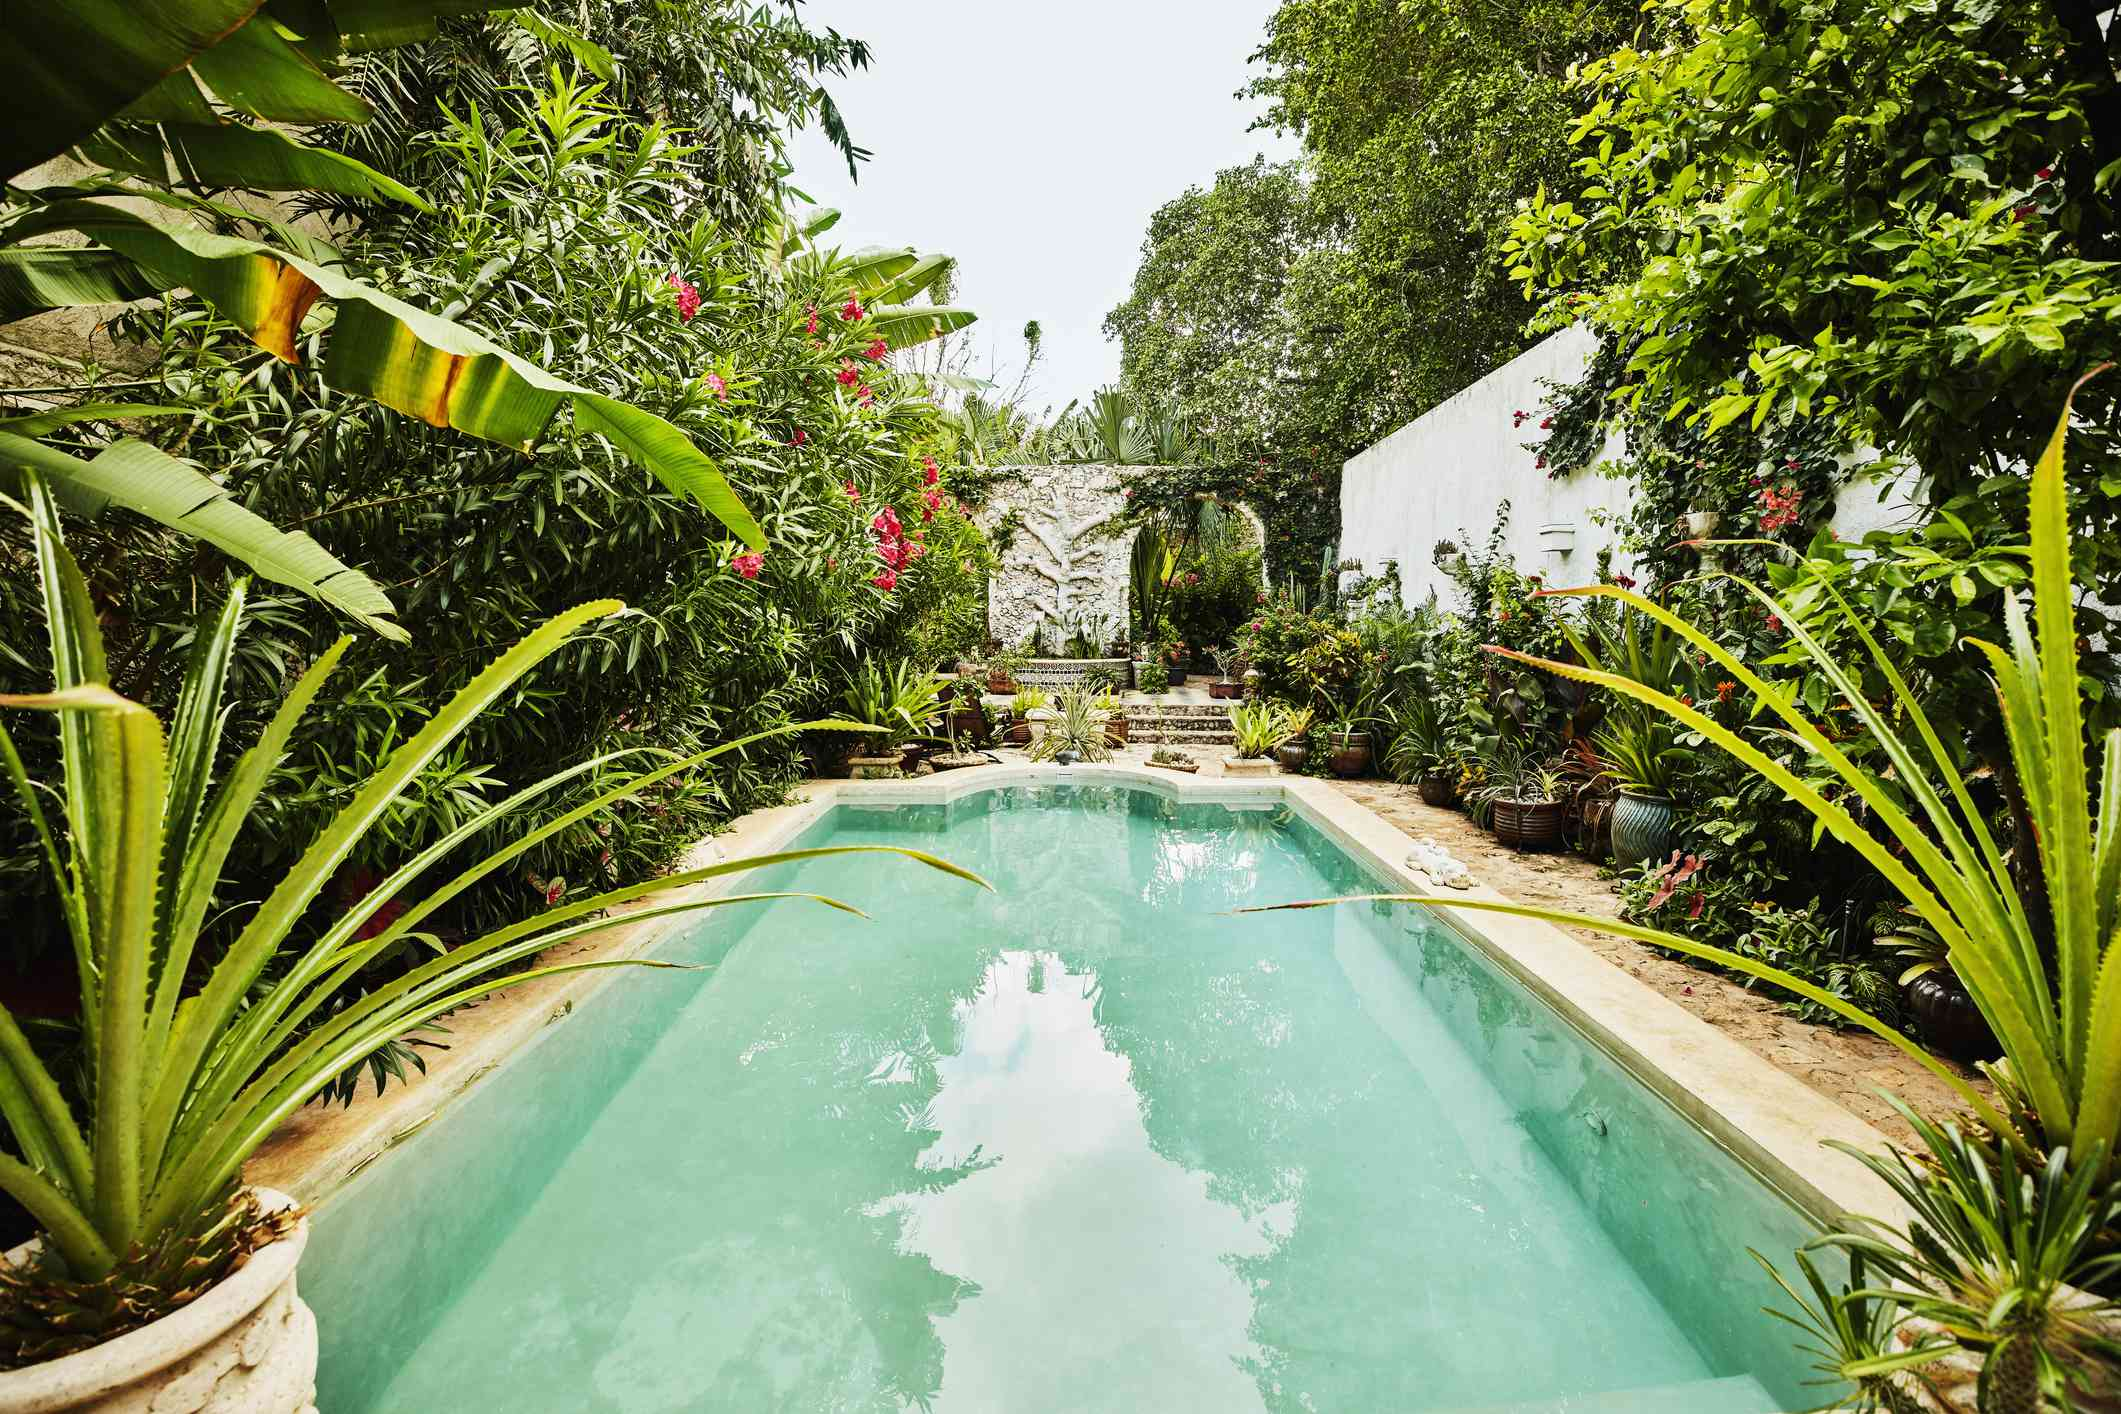 A variety of potted plants surrounding a swimming pool.